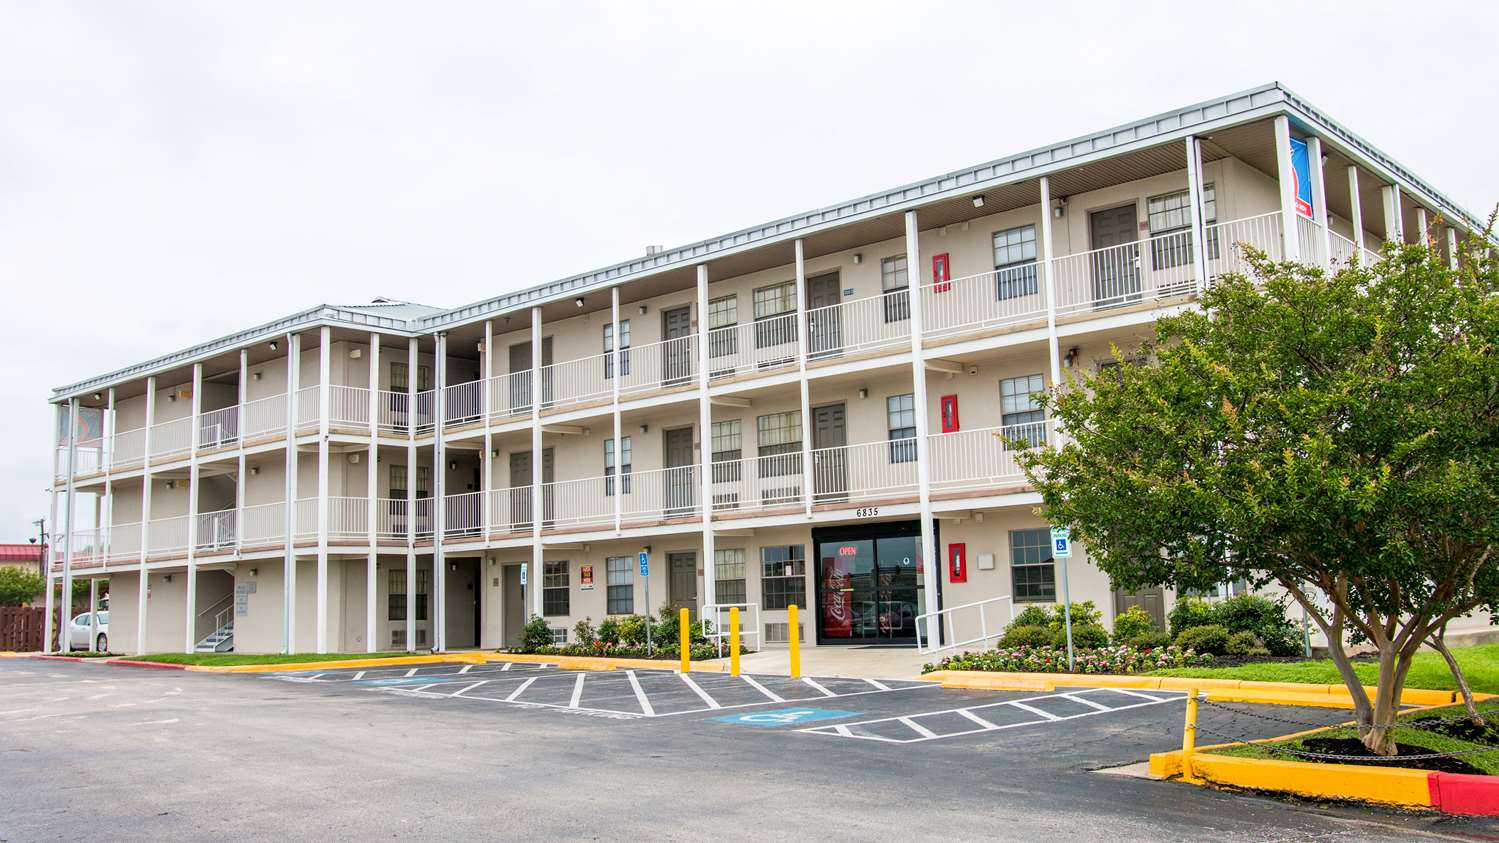 Studio 6 Extended Stay Hotel Lackland San Antonio Tx